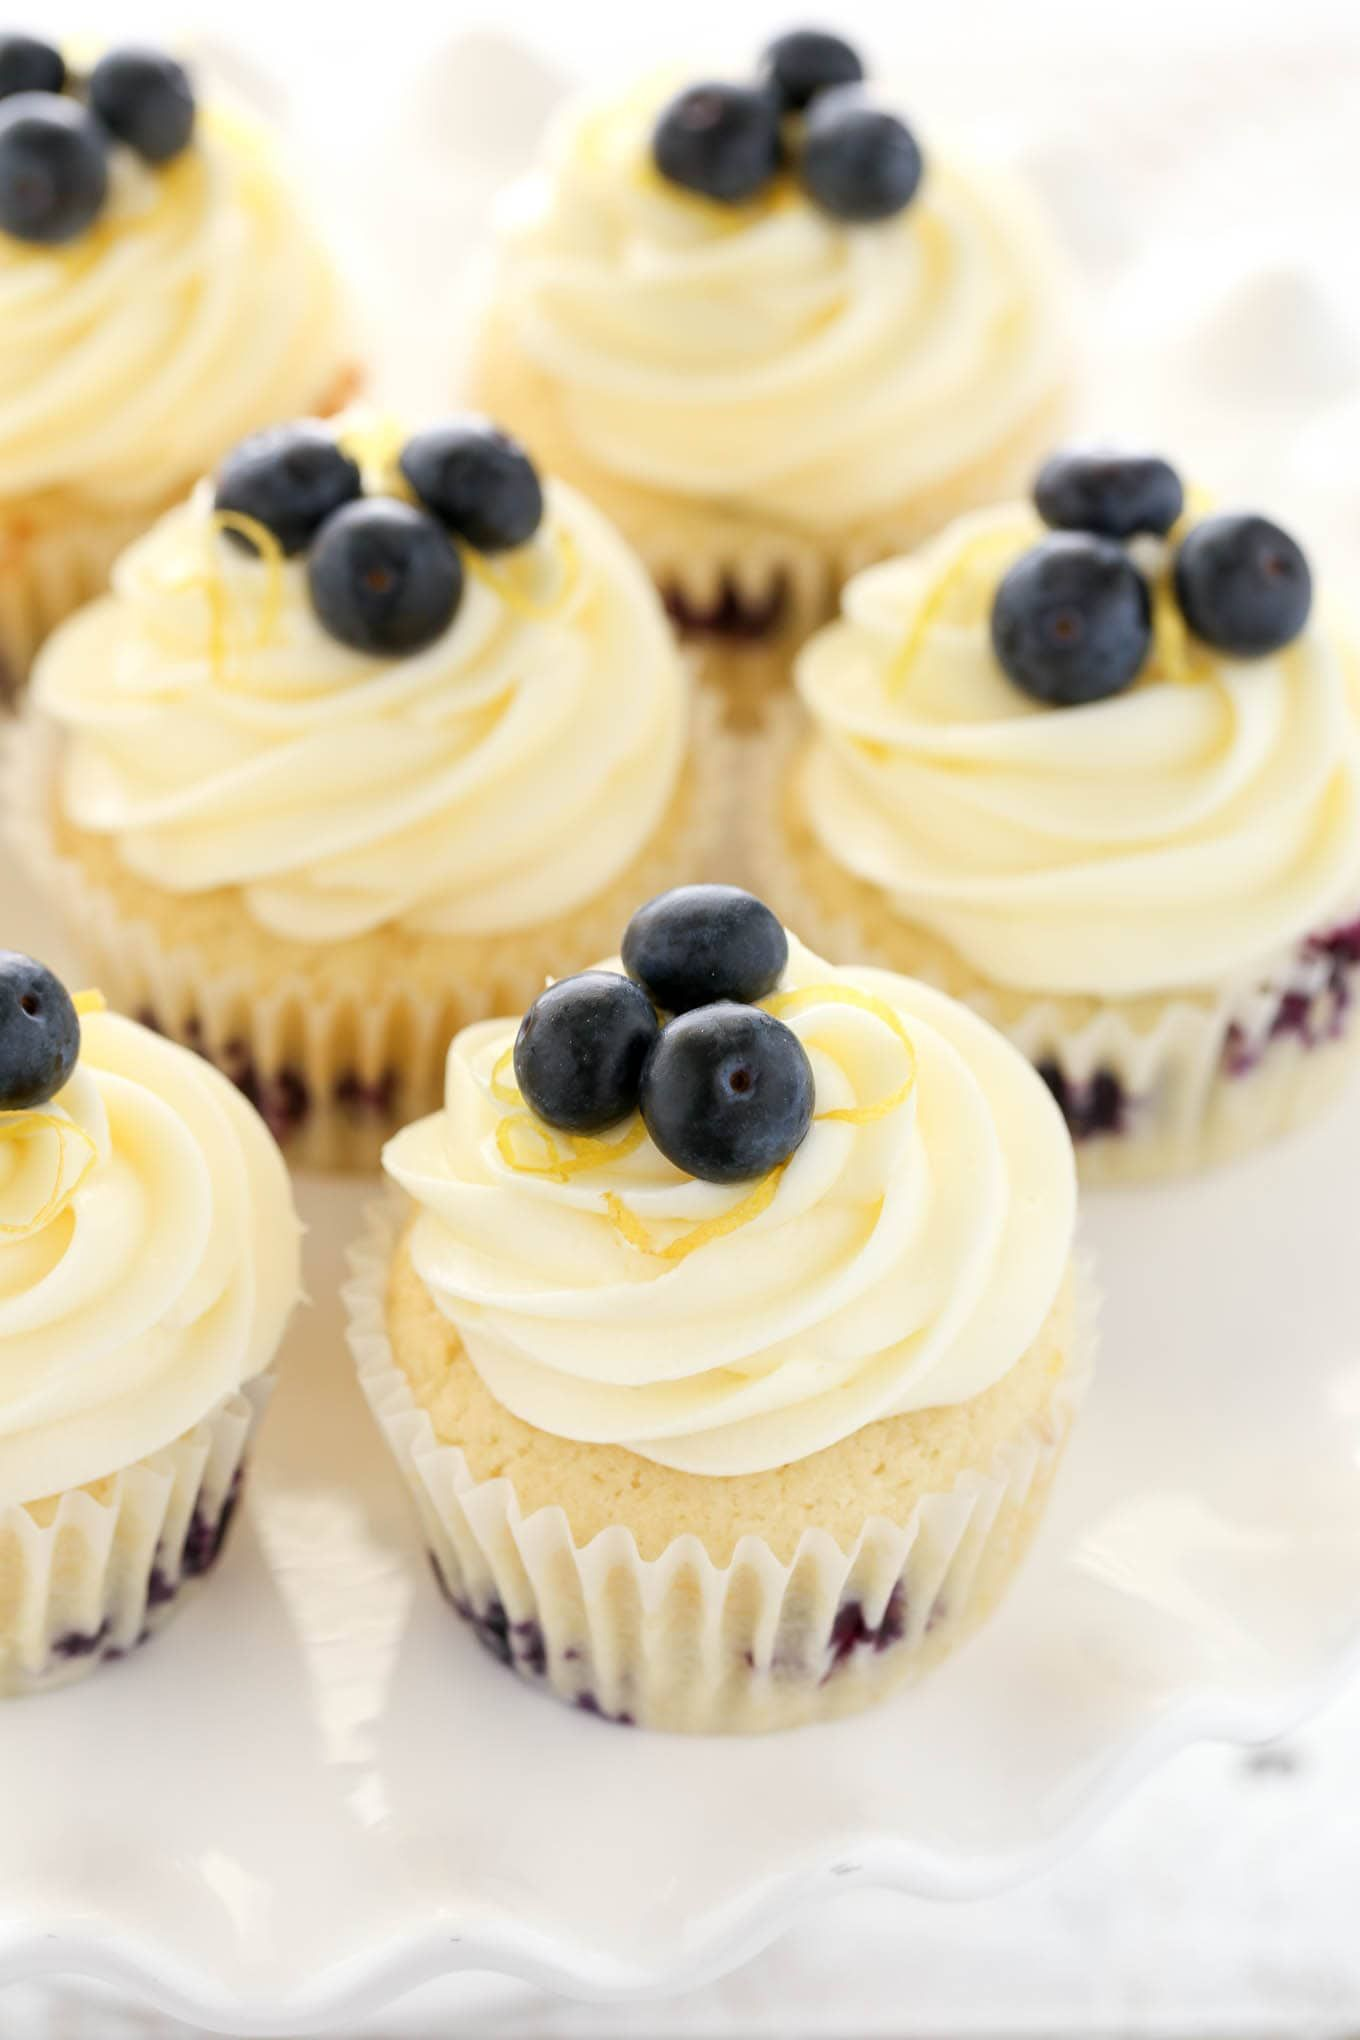 Lemon Blueberry Cupcakes with Lemon Cream Cheese Frosting #lemoncreamcheesefrosting